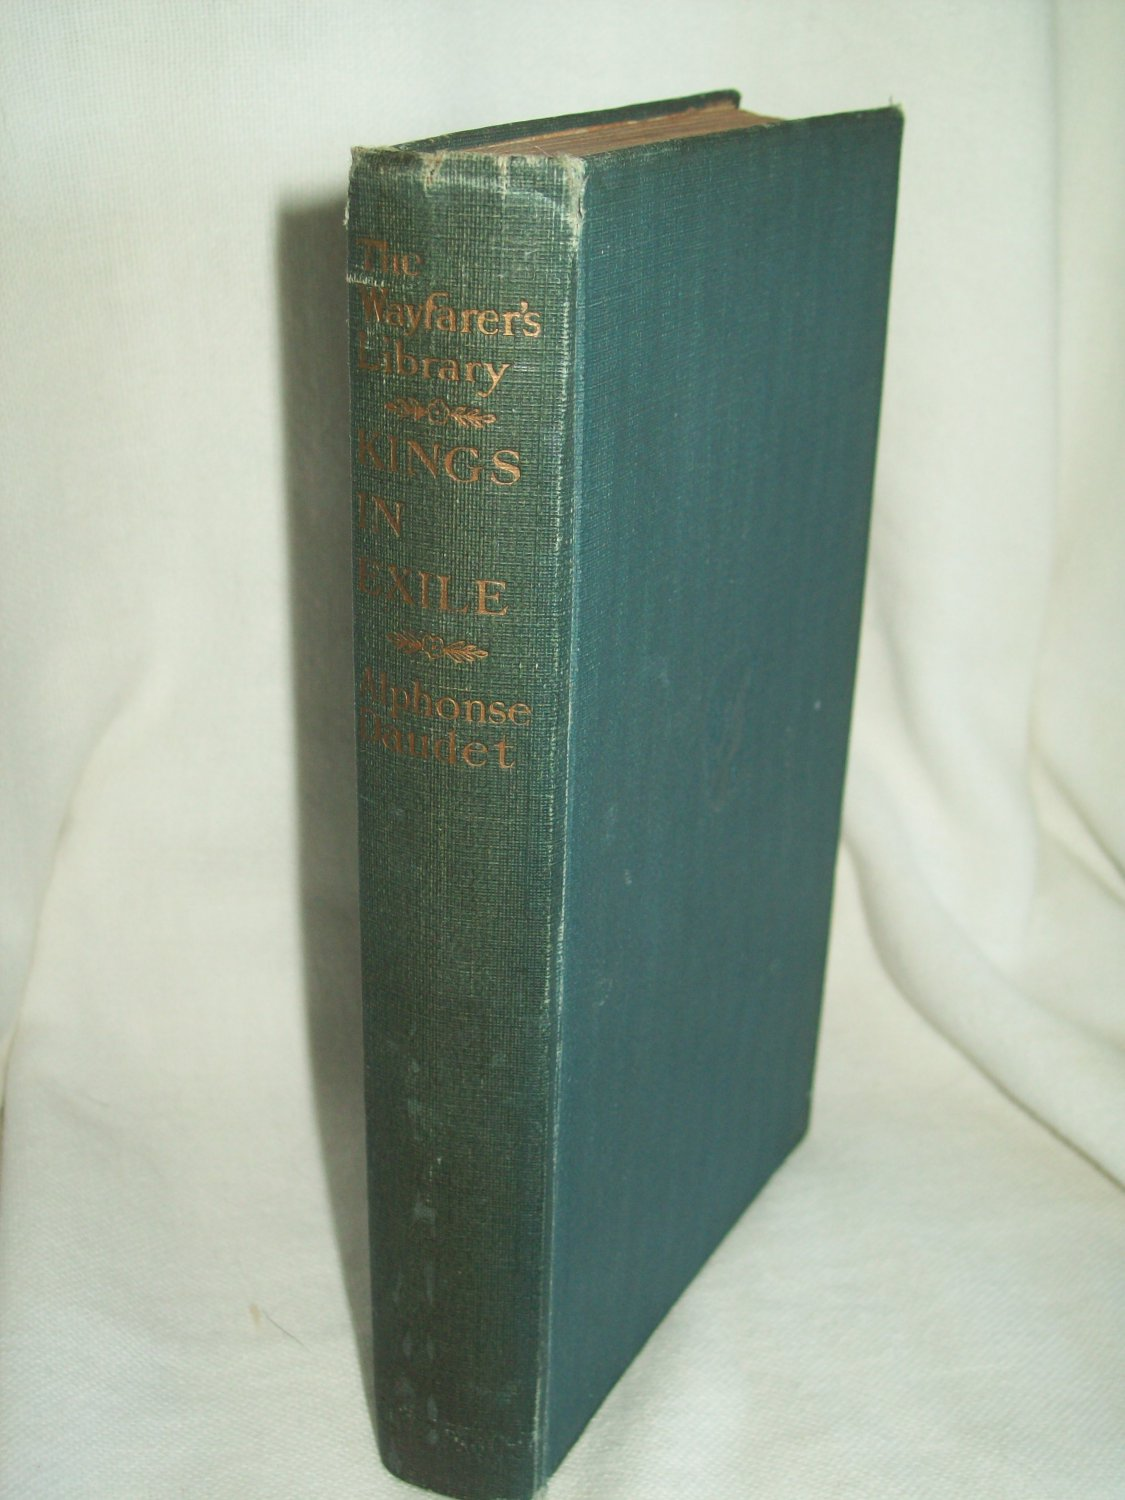 Kings In Exile. Alphonse Daudet, author. Illustrated. Wayfarer's Library Edition. VG.